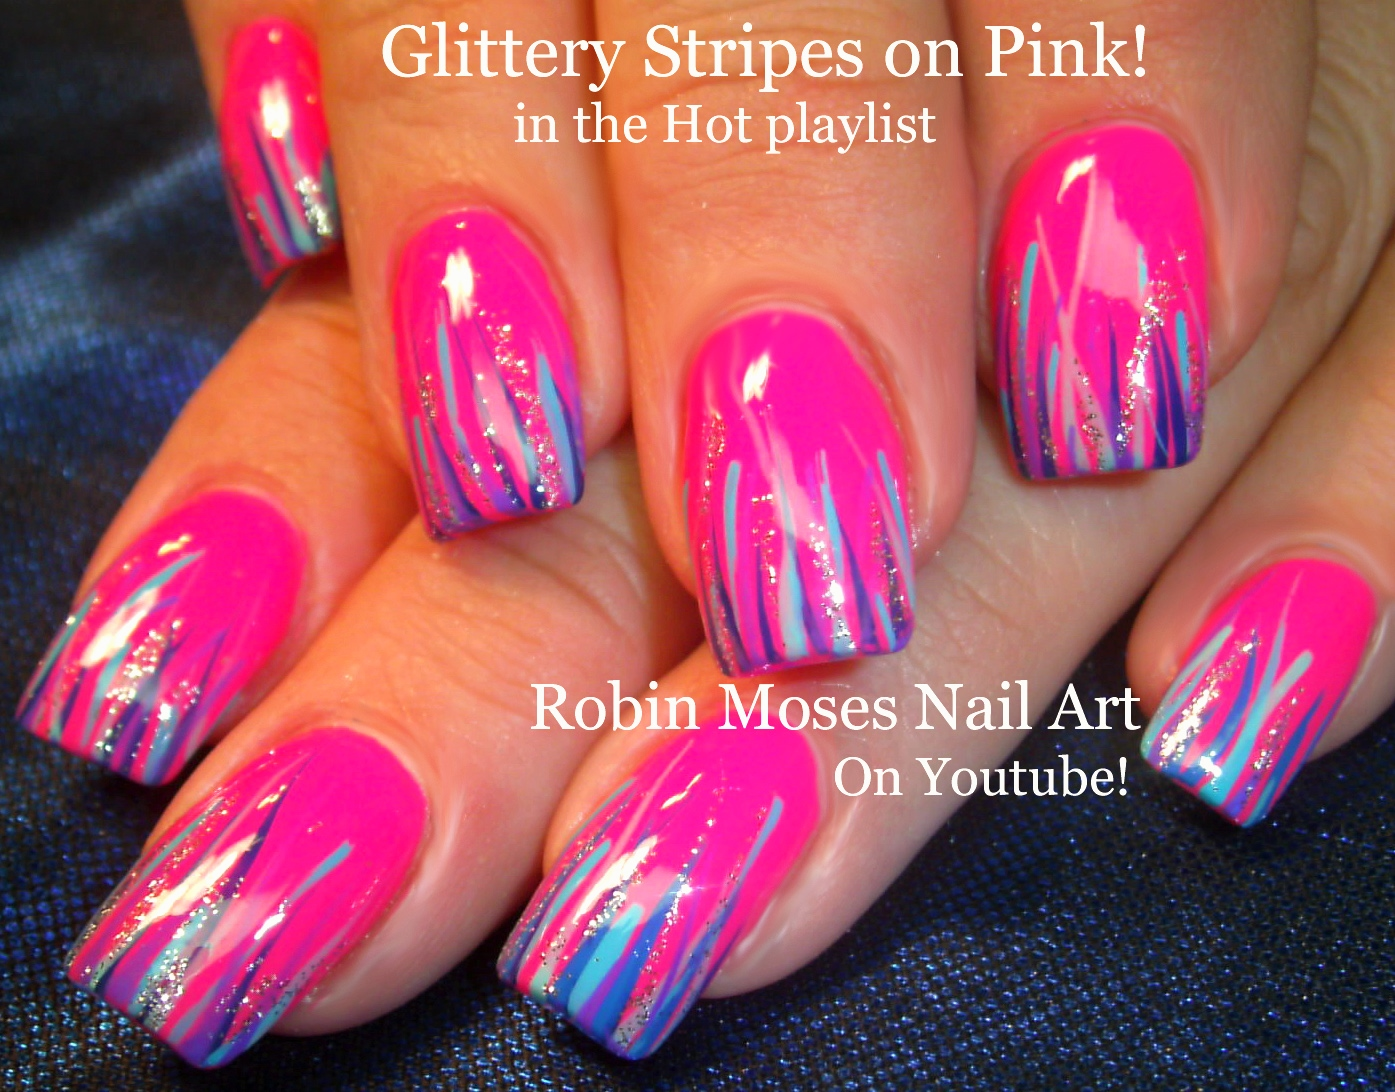 Easy Neon Pink Summer Nails Up and perfect for this summer heat! Have fun  painting! - Robin Moses Nail Art: Easy Neon Pink Summer Nails Up And Perfect